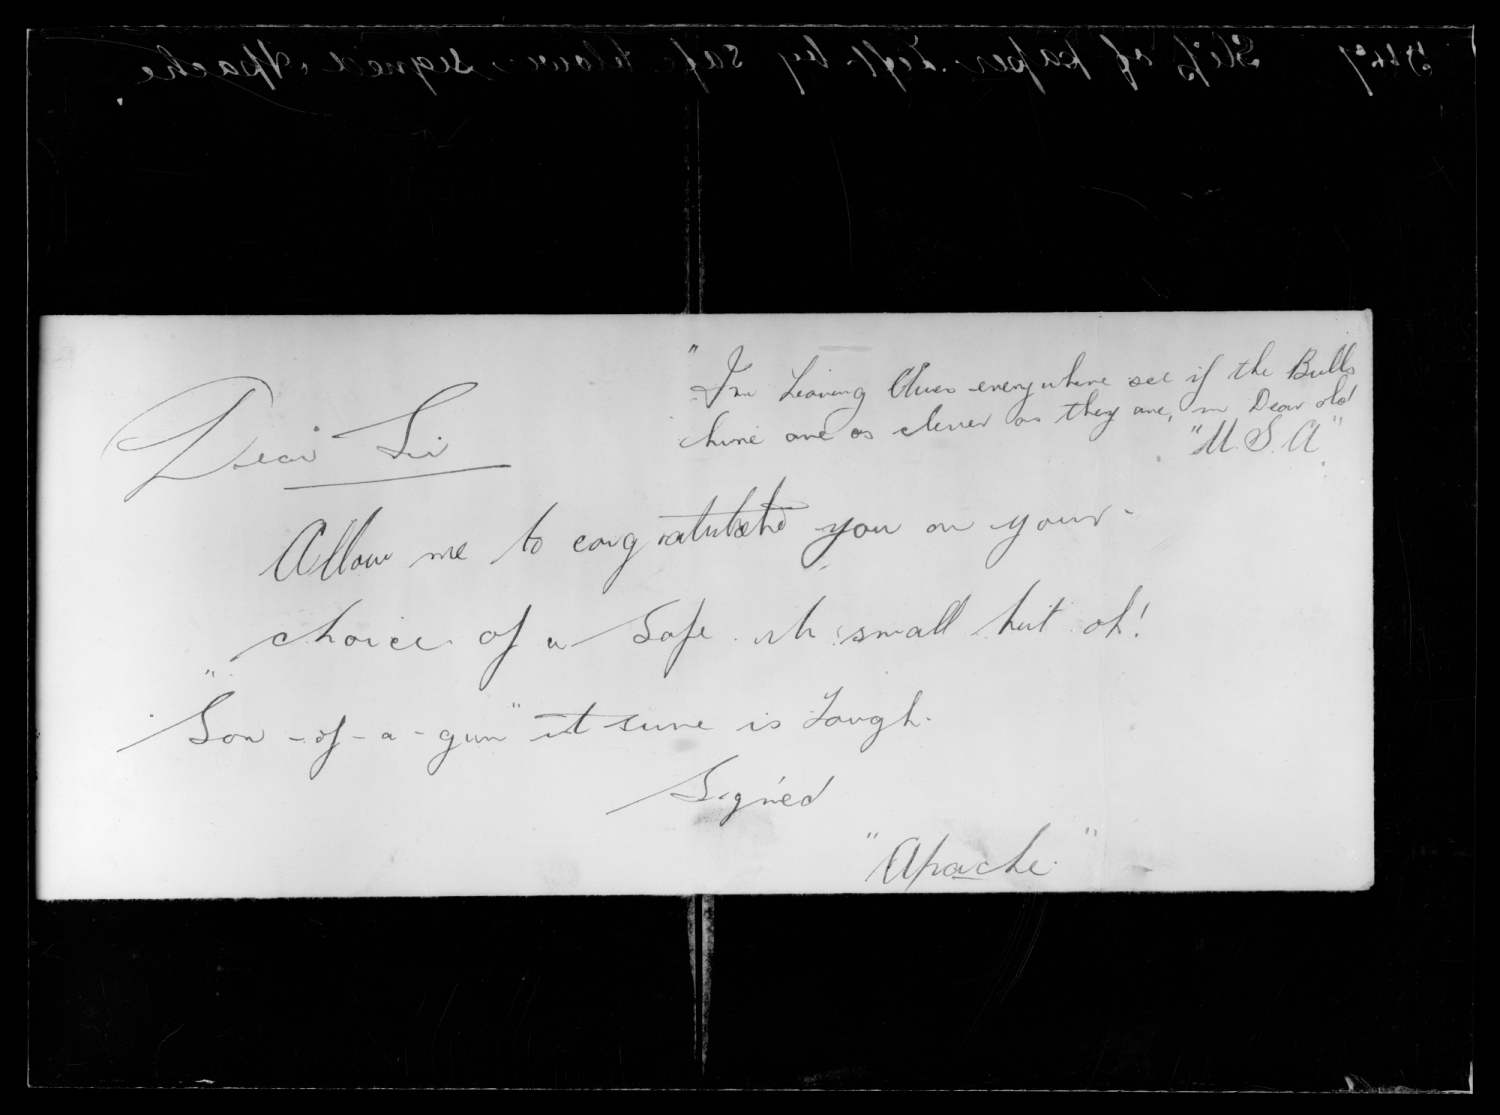 """Apache"" signed note regarding safe, undated, 1925. Believed to have been left by Jack Dennison FP08_0003_008."